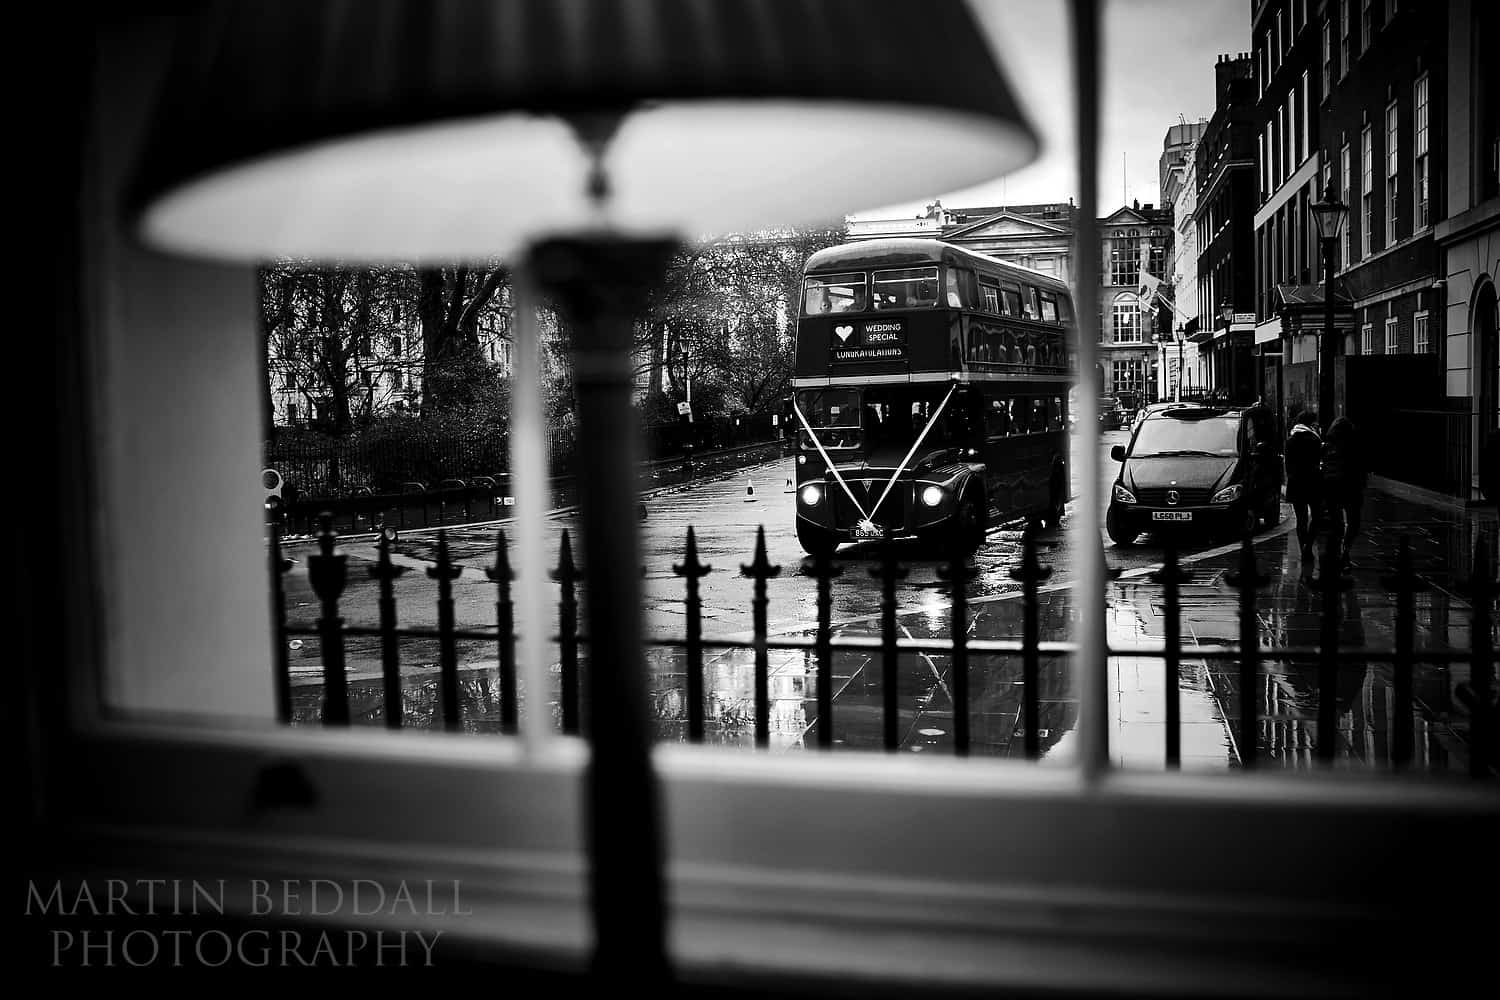 Wedding bus arrives at the In and Out club in London